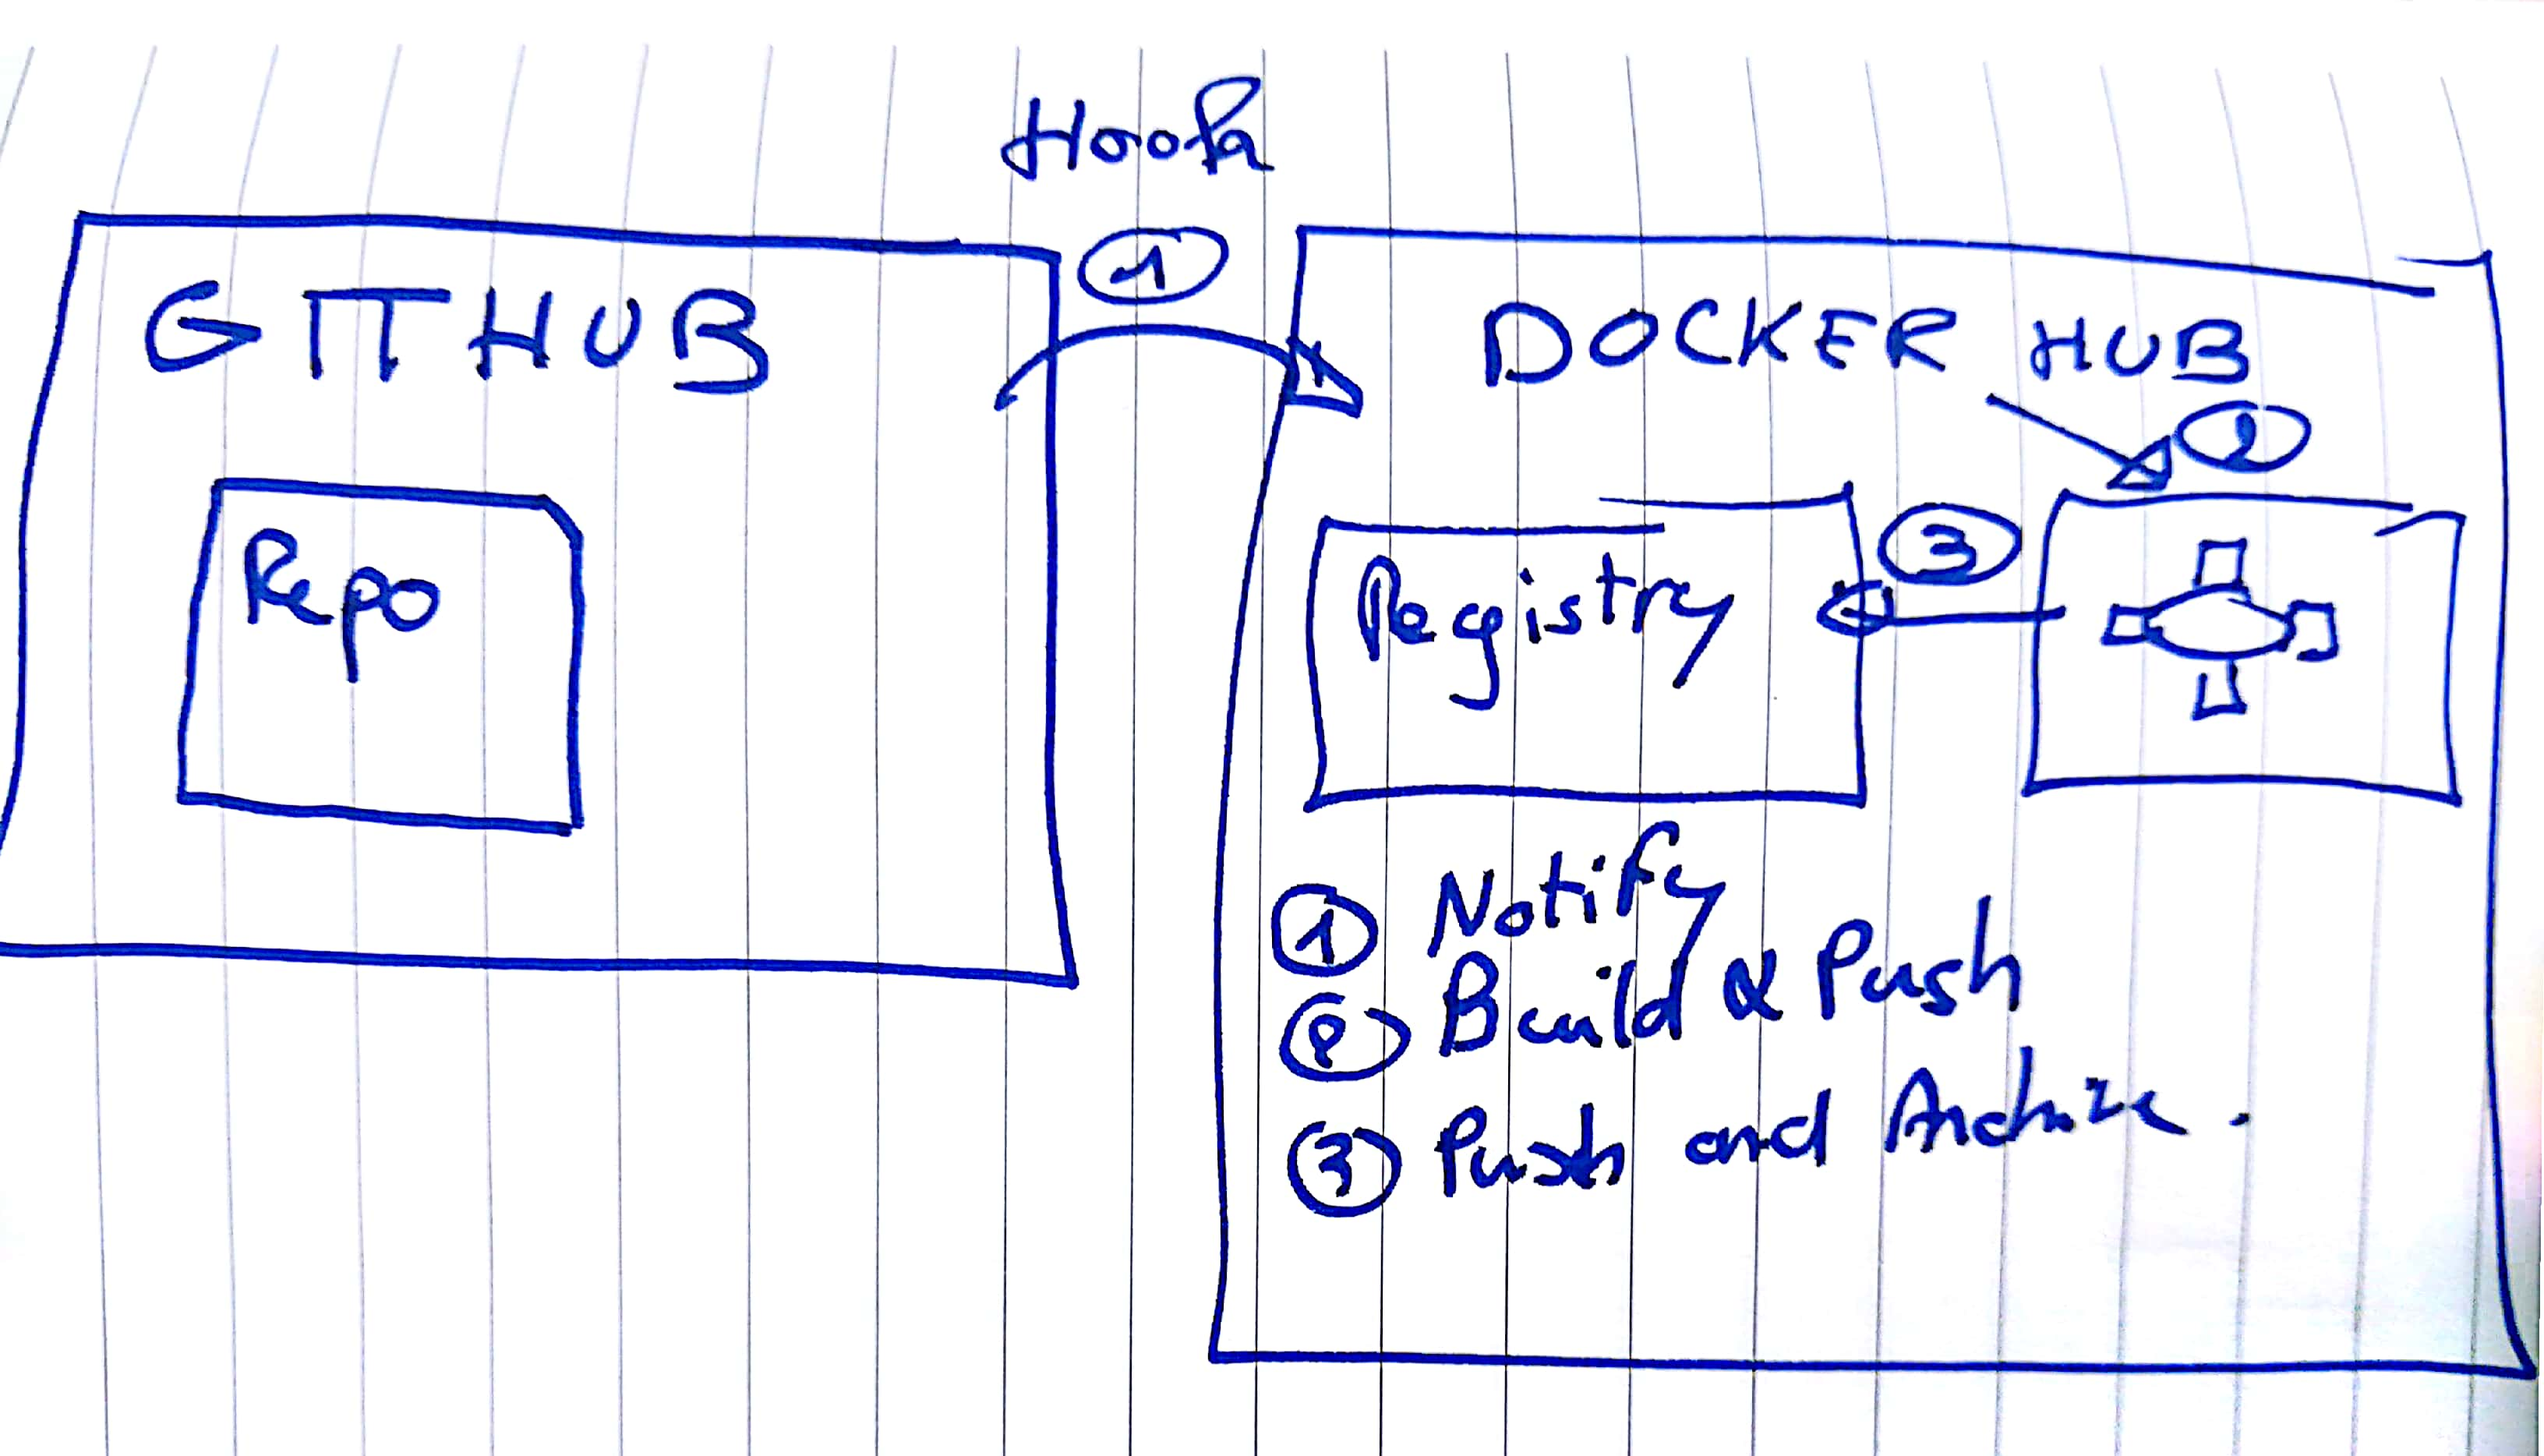 Docker Hub & Builds draw